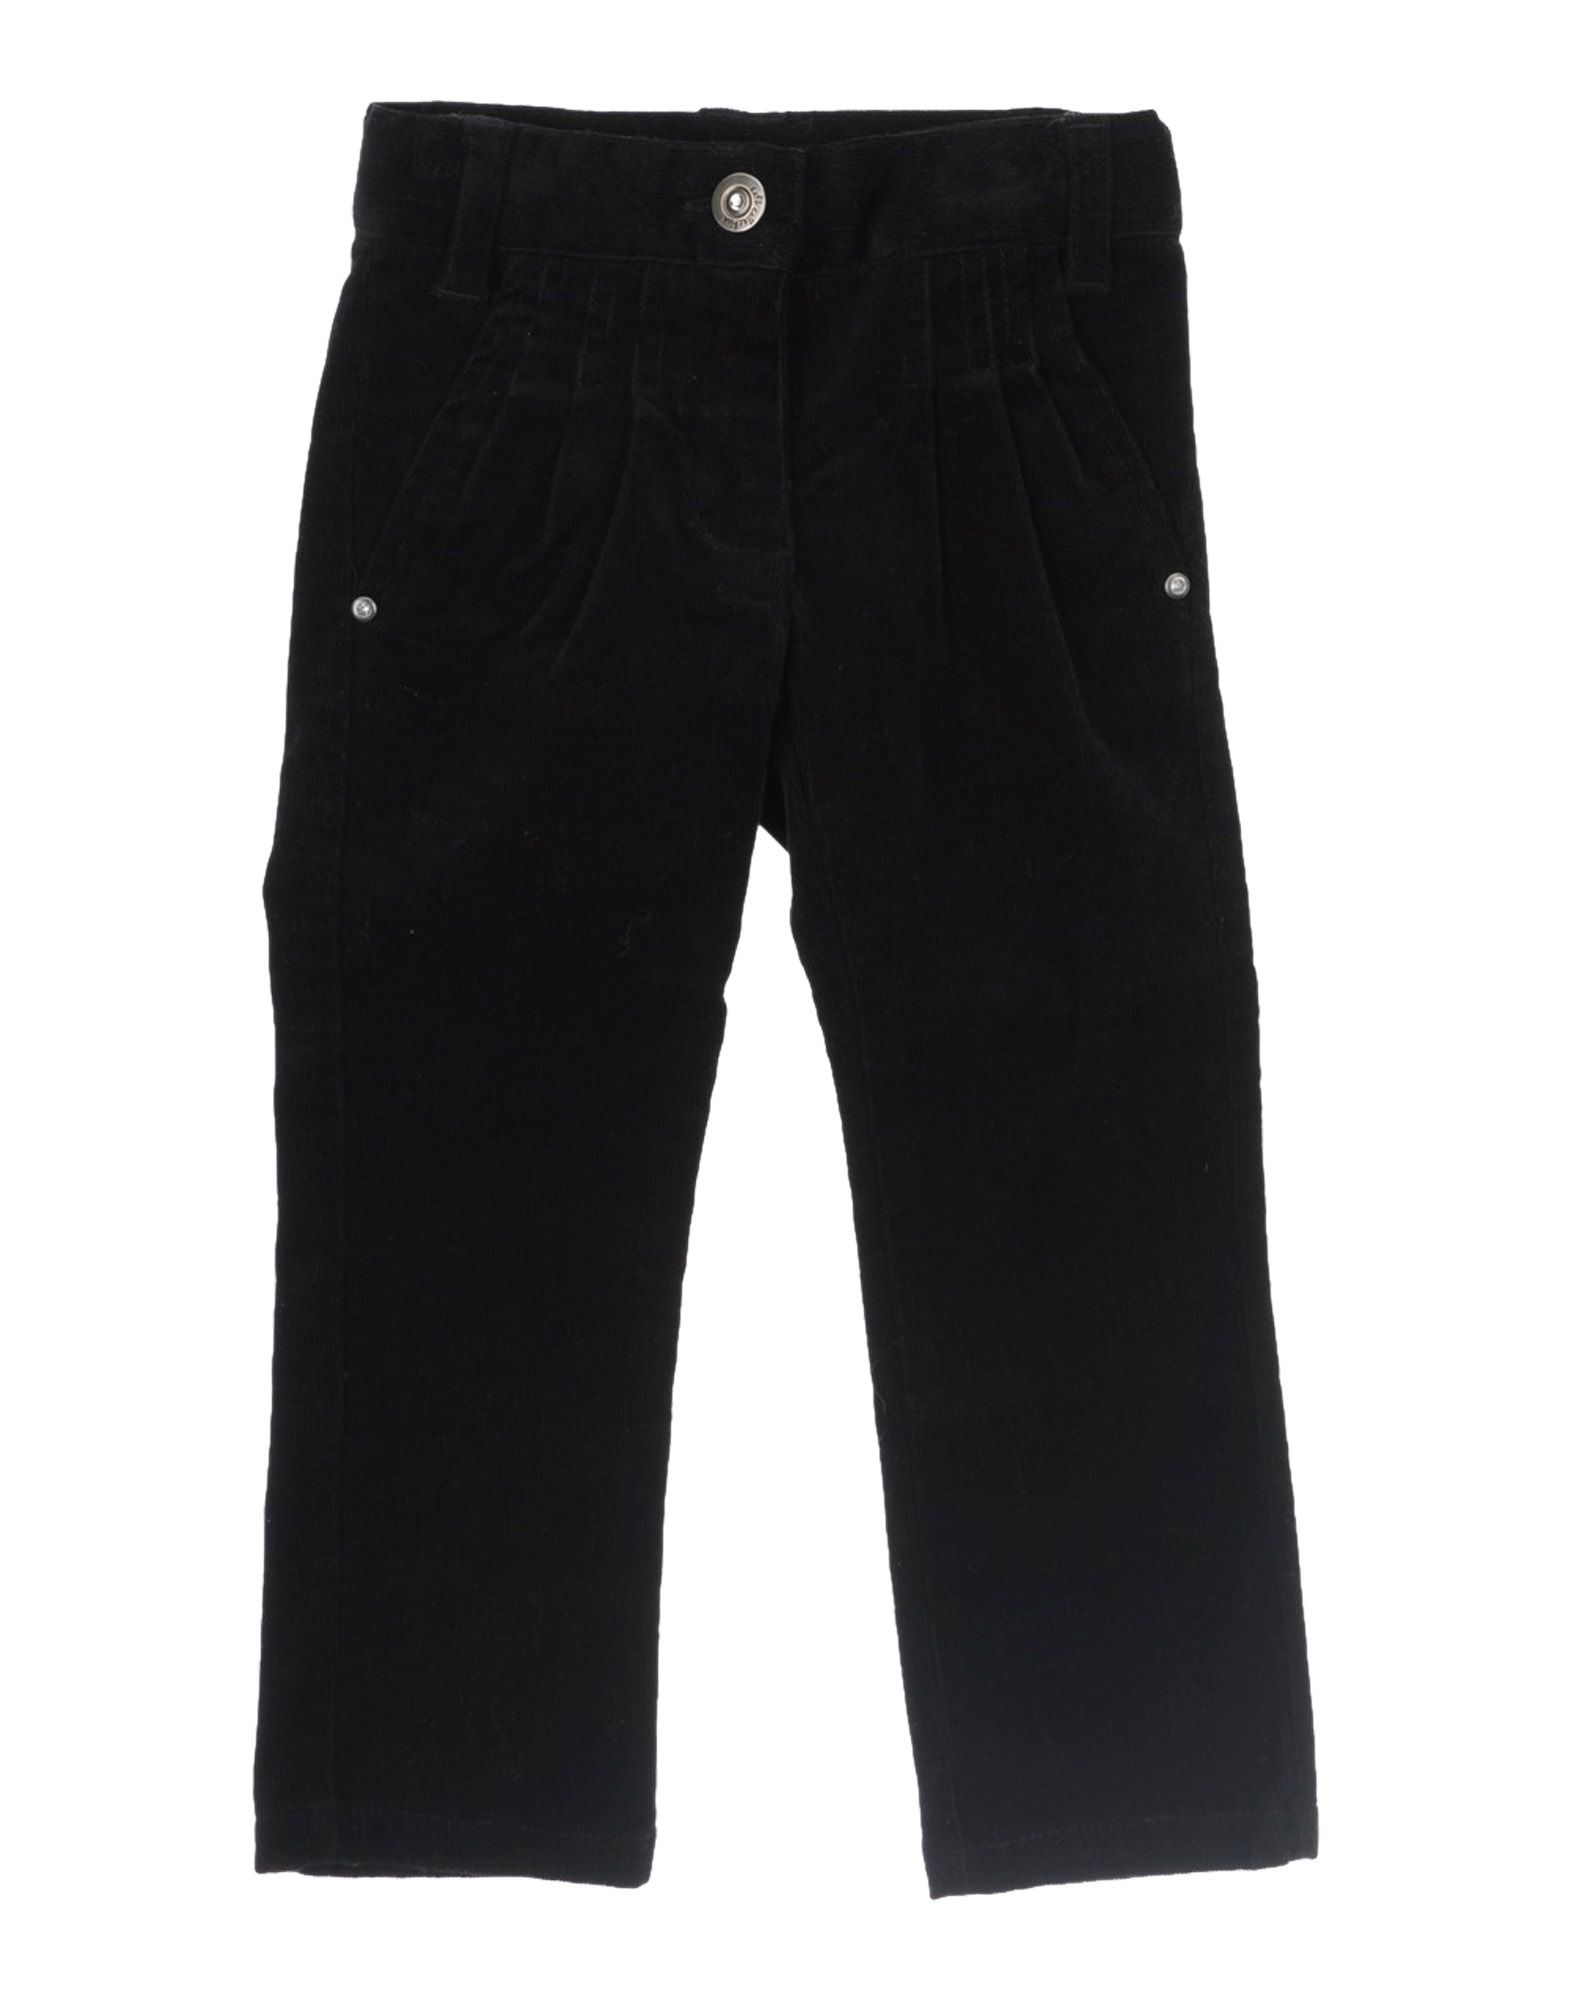 MC BABY GIRLS Casual pants